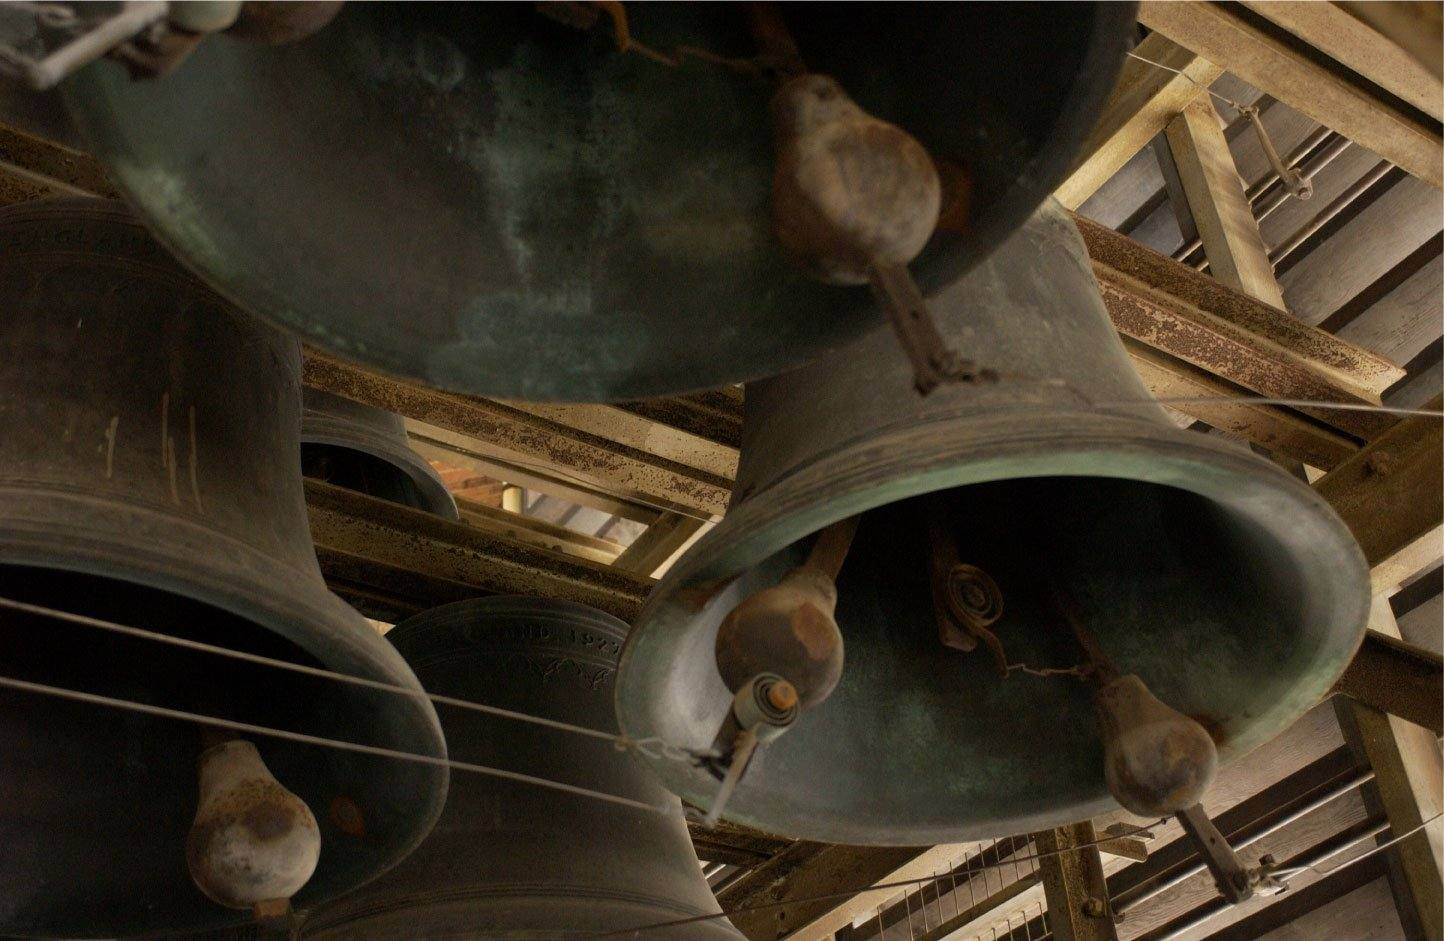 Carillon Concert - Happy Birthday to Her Majesty Queen Elizabeth II of the United Kingdom!